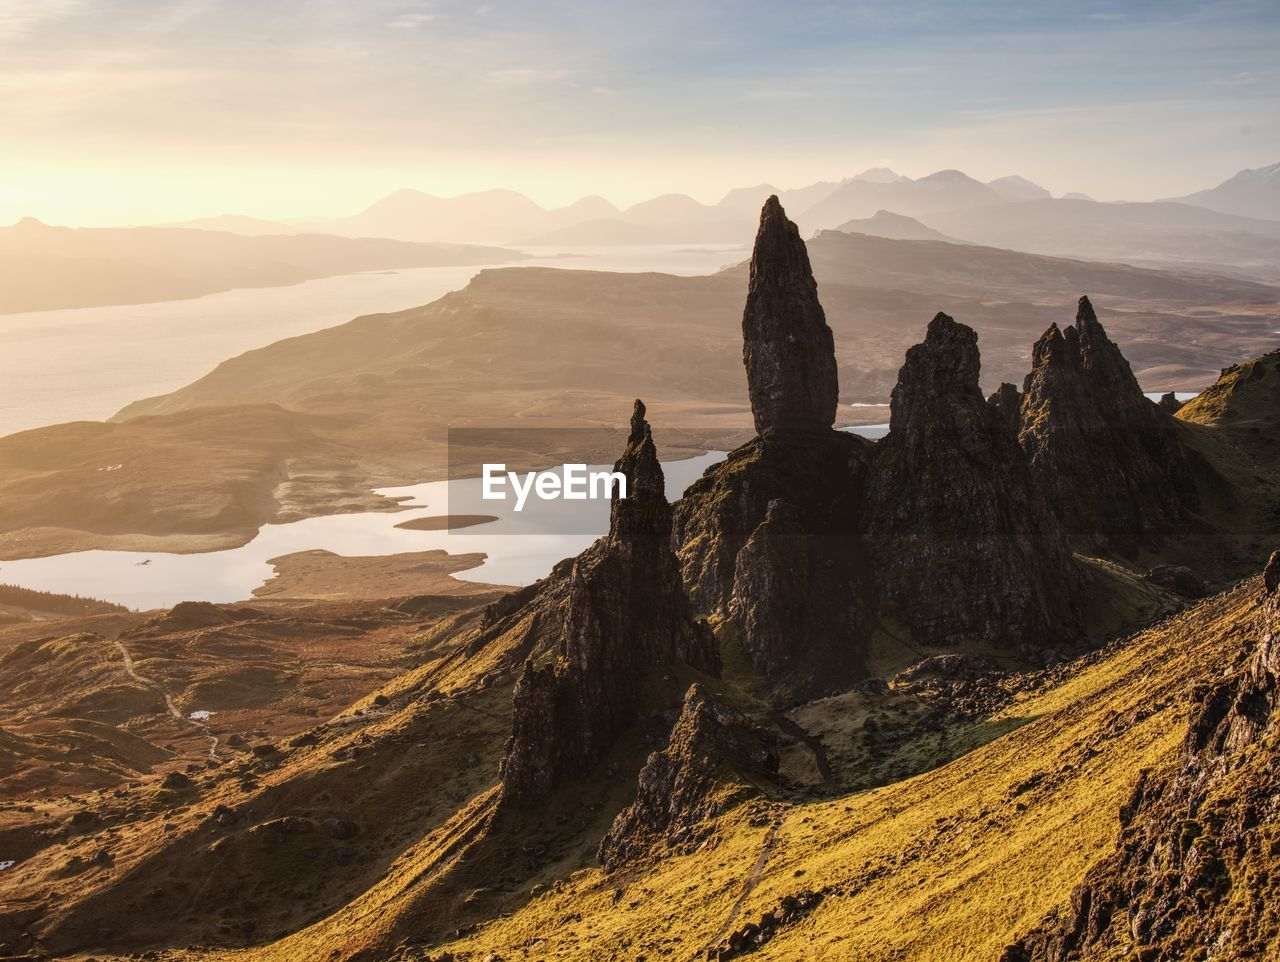 Sunrise at the old man of storr - amazing scenery with vivid colors. symbolic tourist attraction